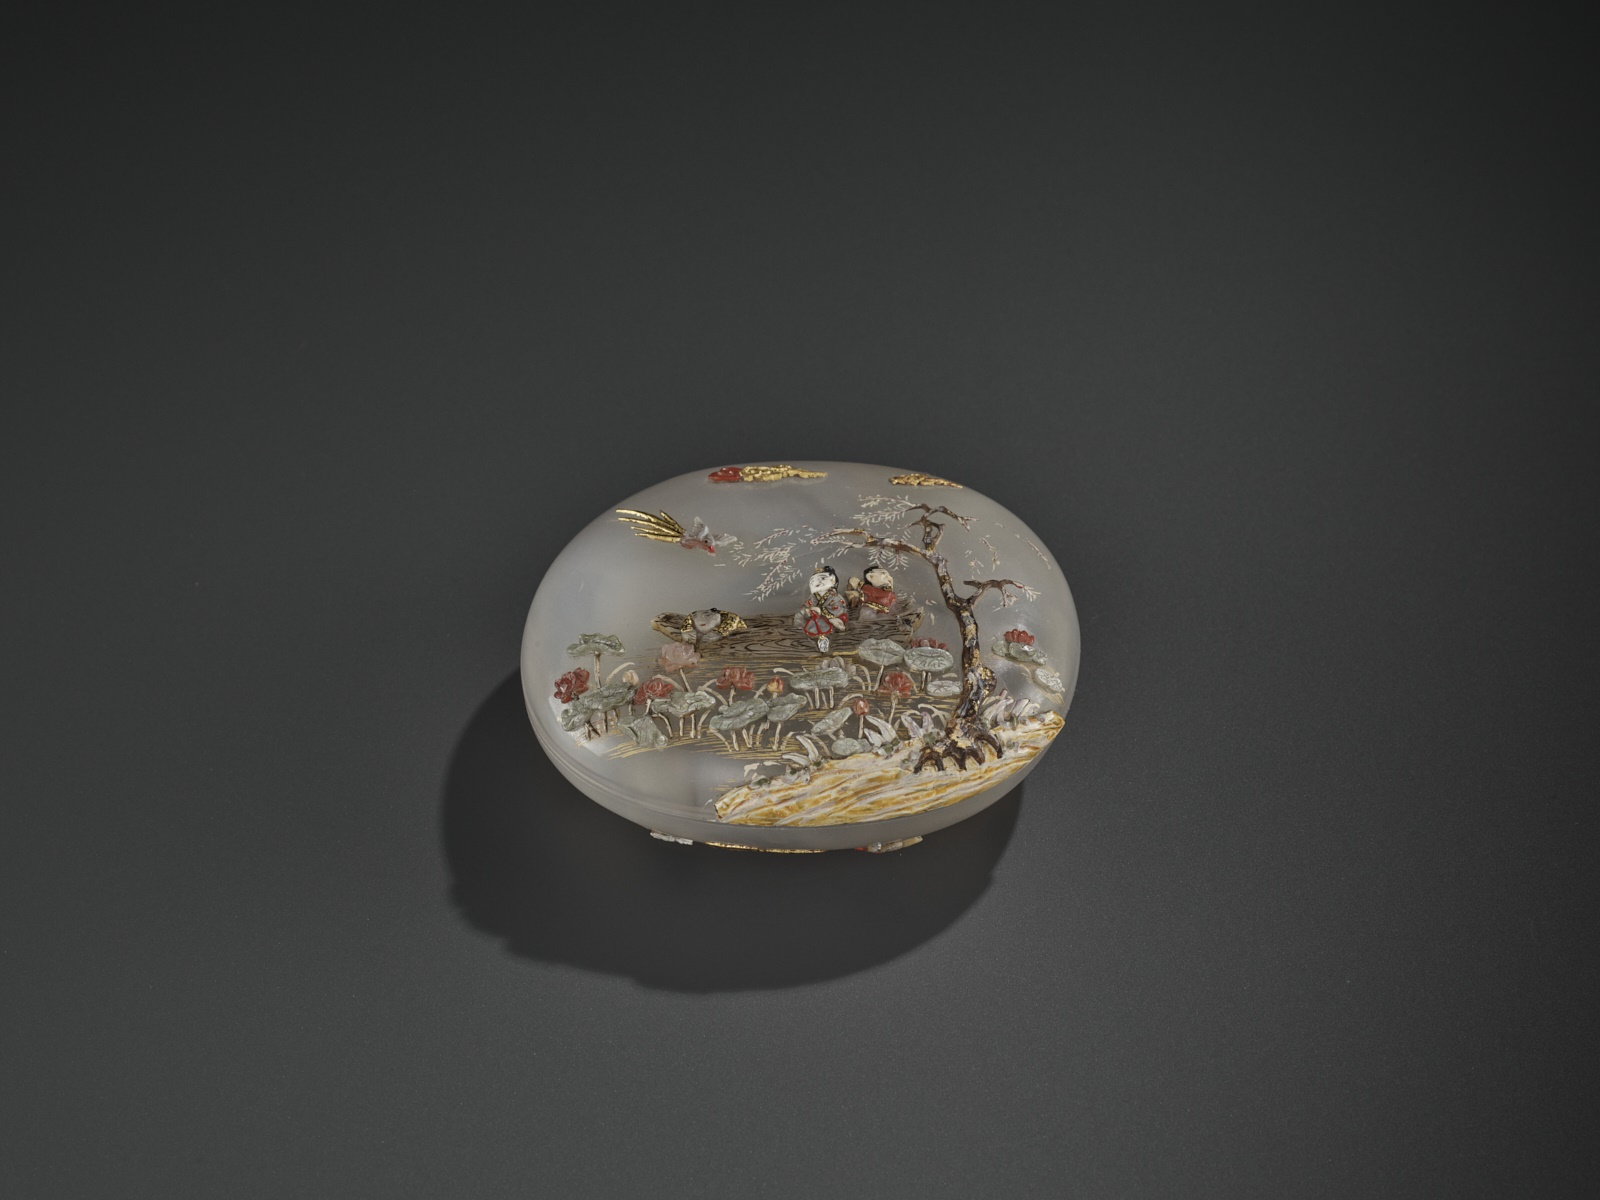 AN EMBELLISHED 'PICKING LOTUS' AGATE BOX, QING DYNASTY - Image 3 of 11